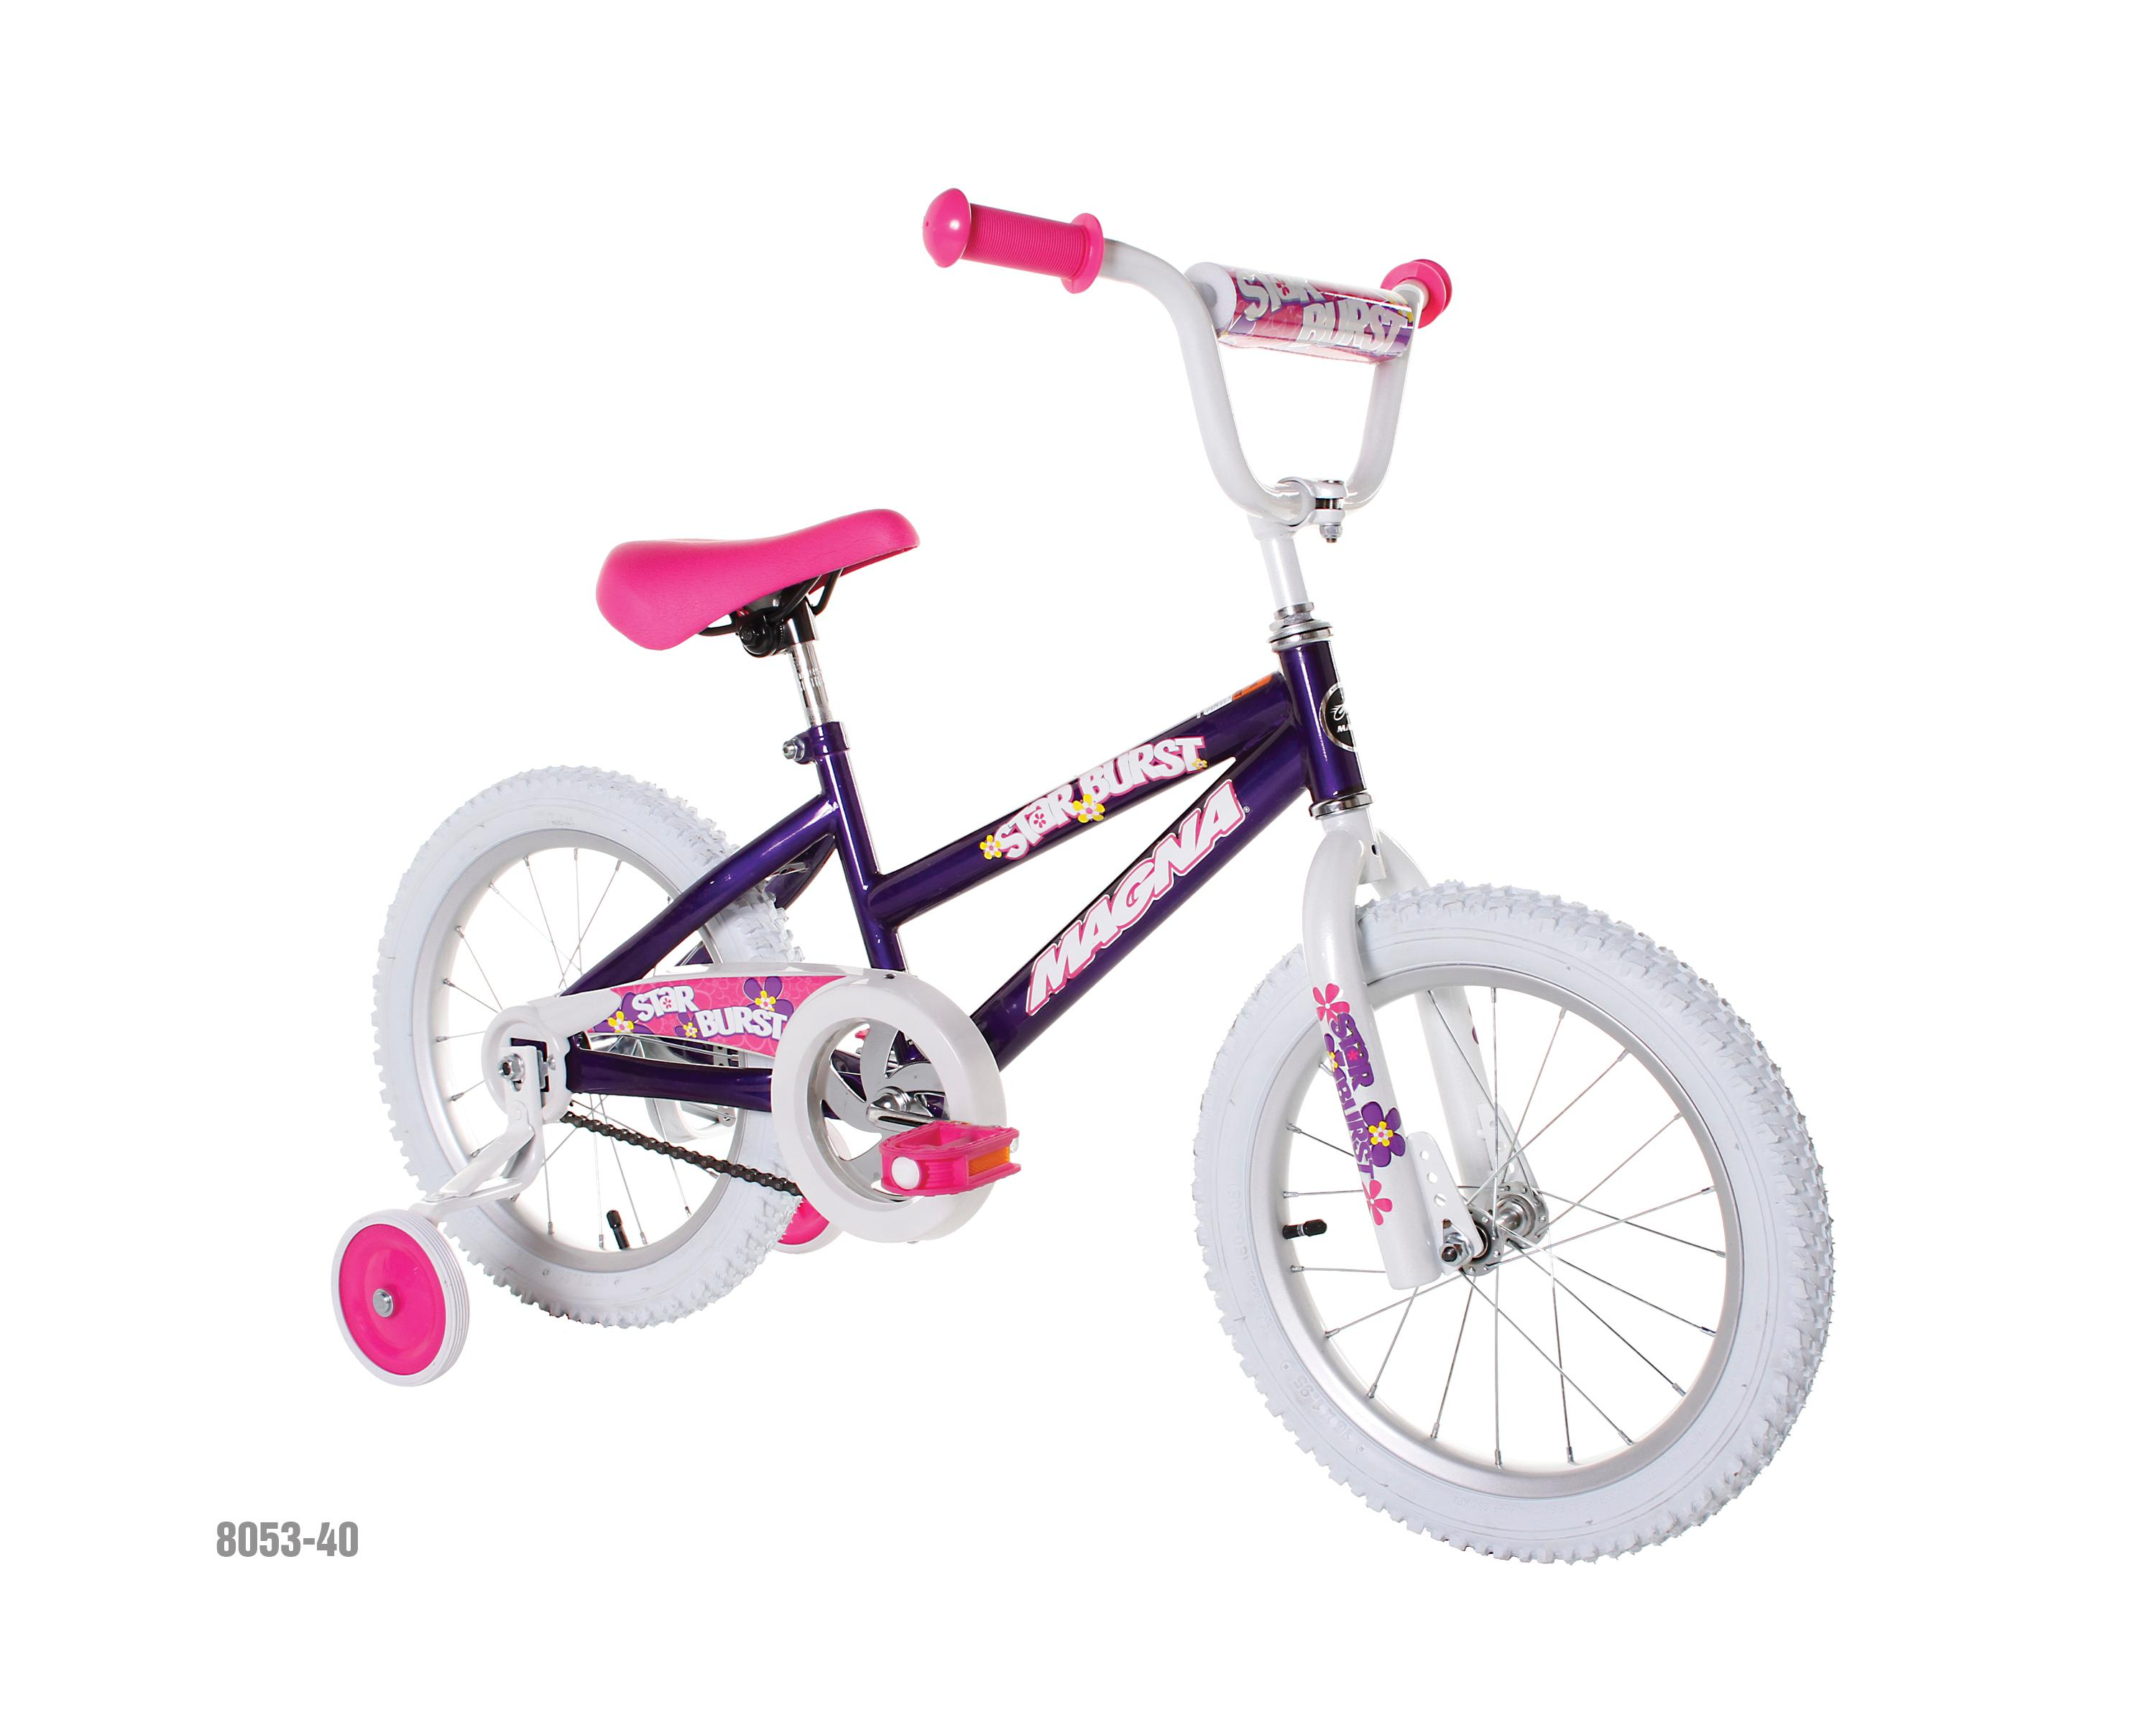 3922aad94c0 Amazon.com   Dynacraft Magna Starburst Girls BMX Street Dirt Bike 16 ...